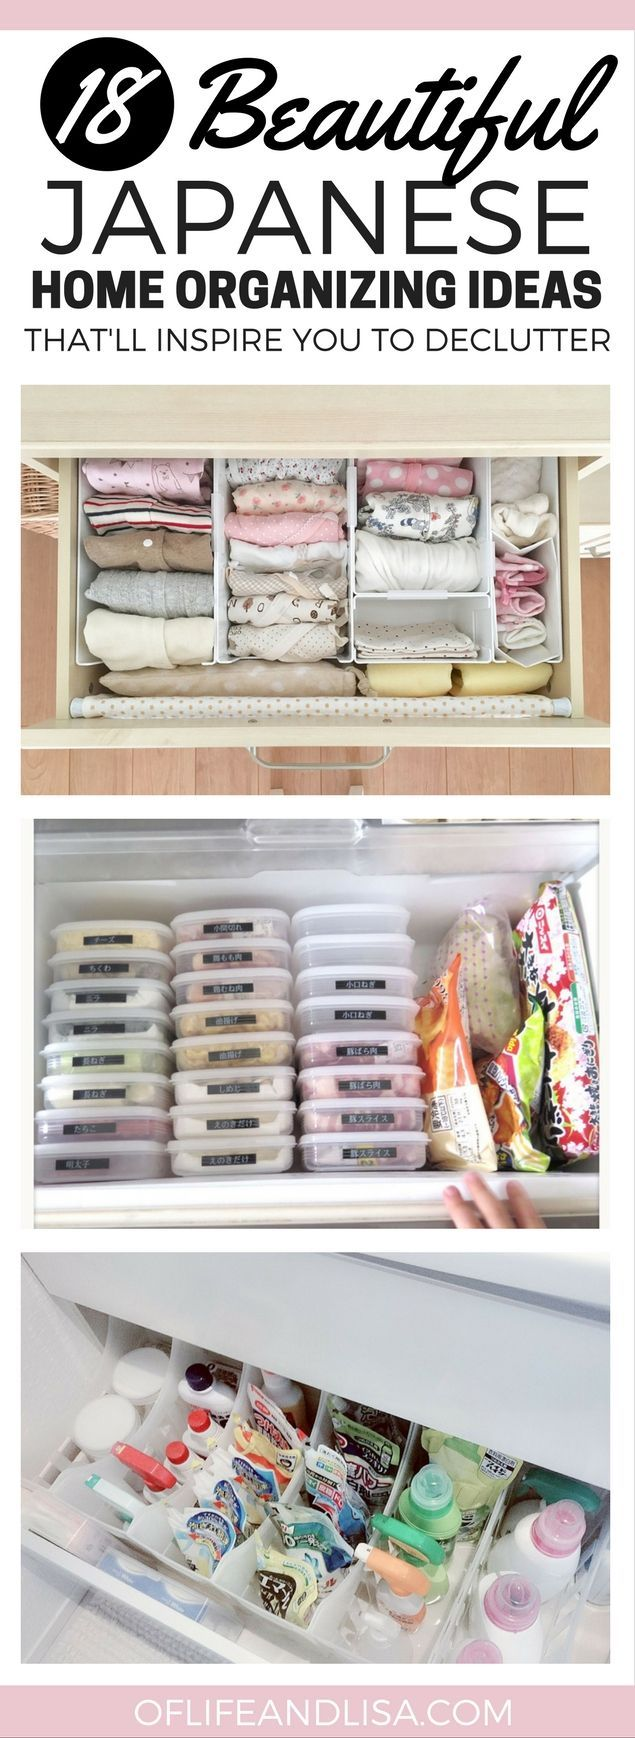 548 best Home Organization Tips images on Pinterest | Organization ...